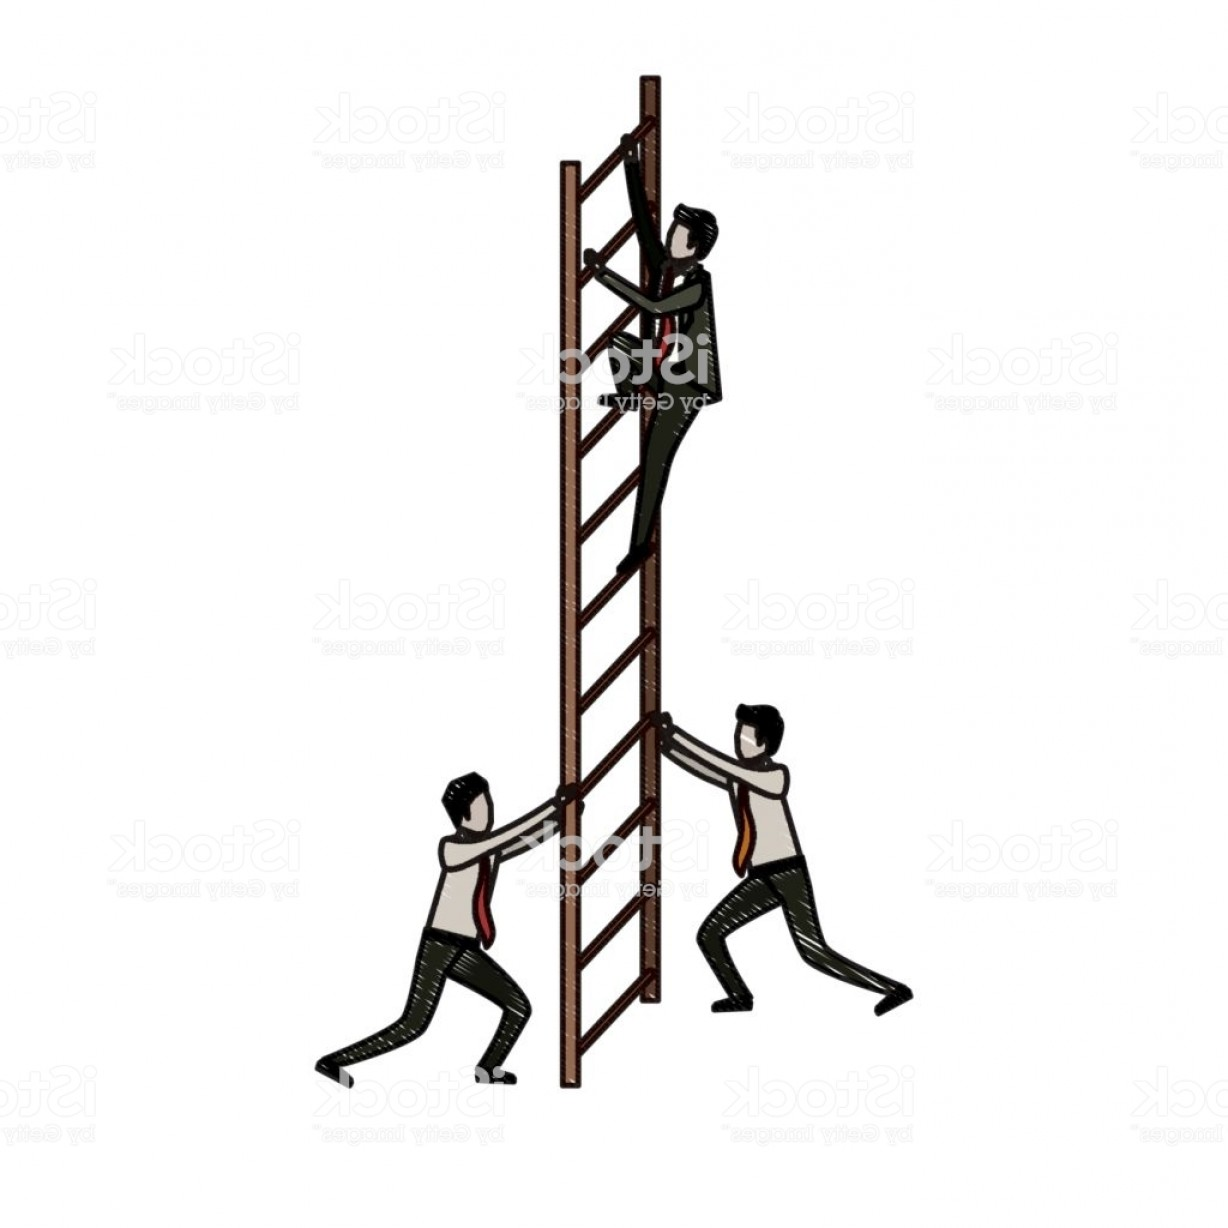 Stair Climb Vector: Business Men Climbing Wooden Stairs In Pencils Colored Silhouette Gm